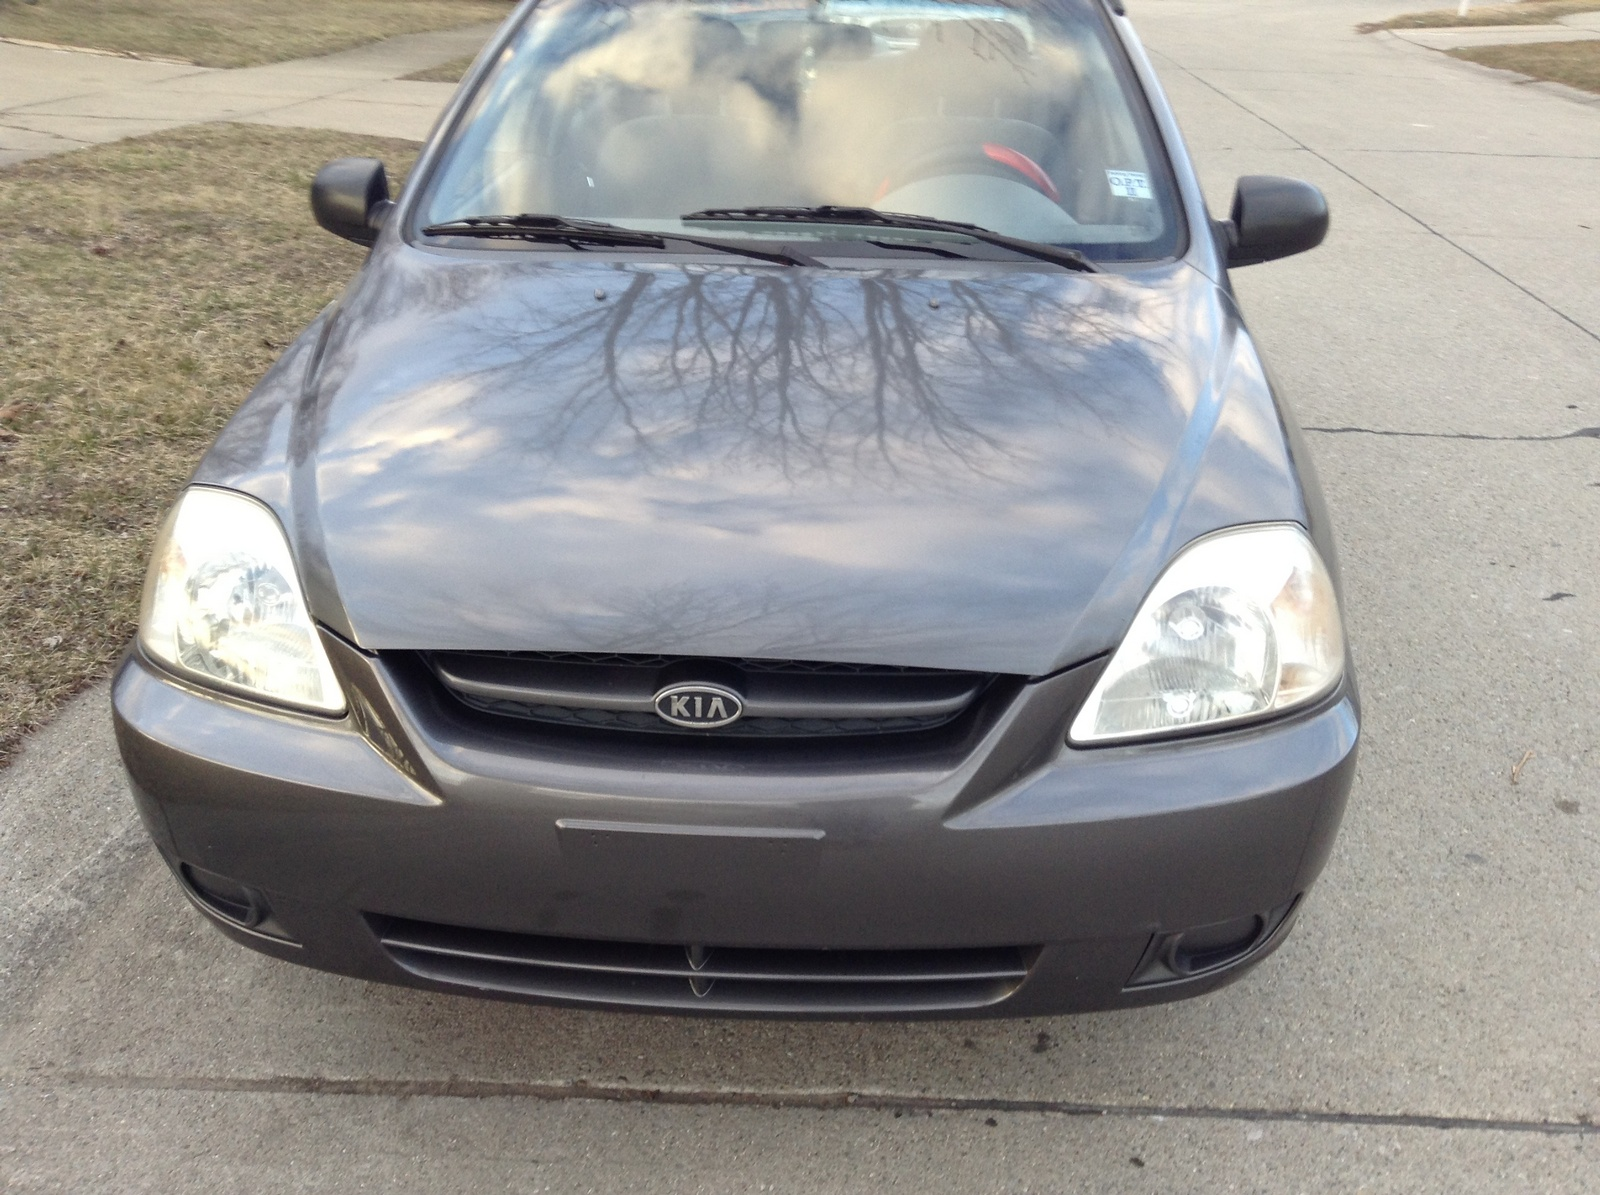 Picture of 2003 Kia Rio Base